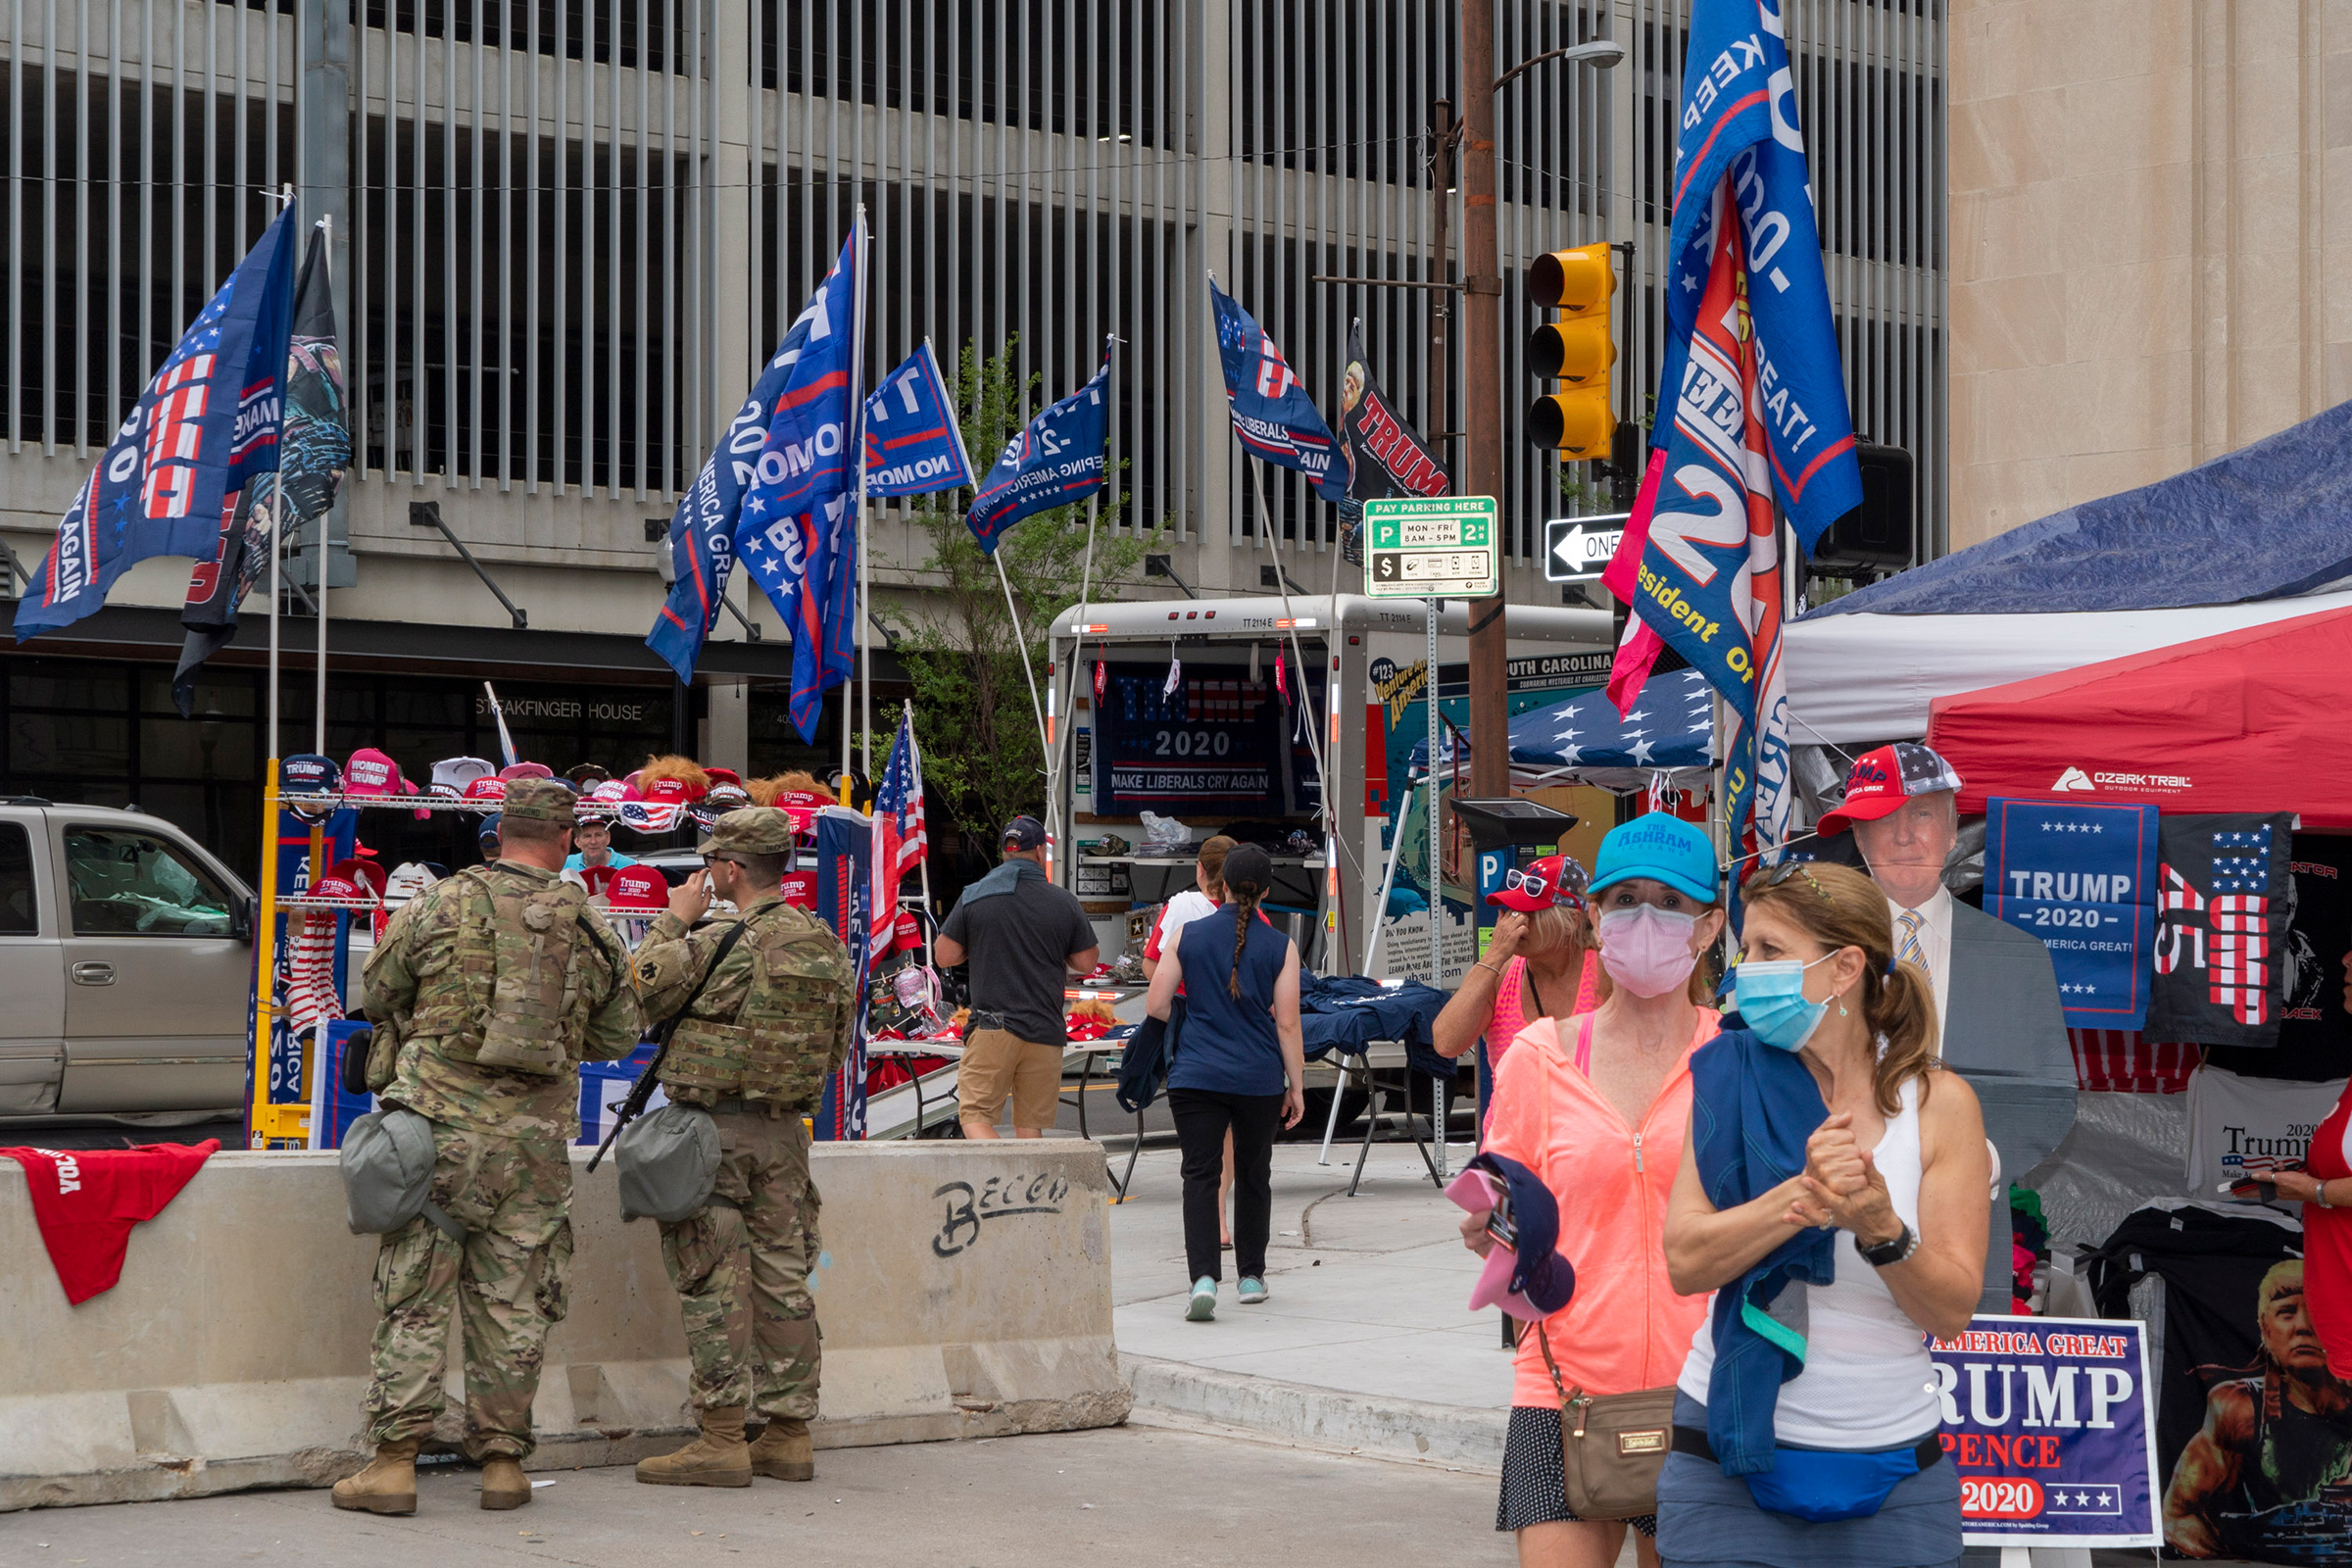 National Guard and vendors selling Trump memorabilia near an entrance to the Trump rally at the BOK Center in Tulsa, Okla., on June 20, 2020.